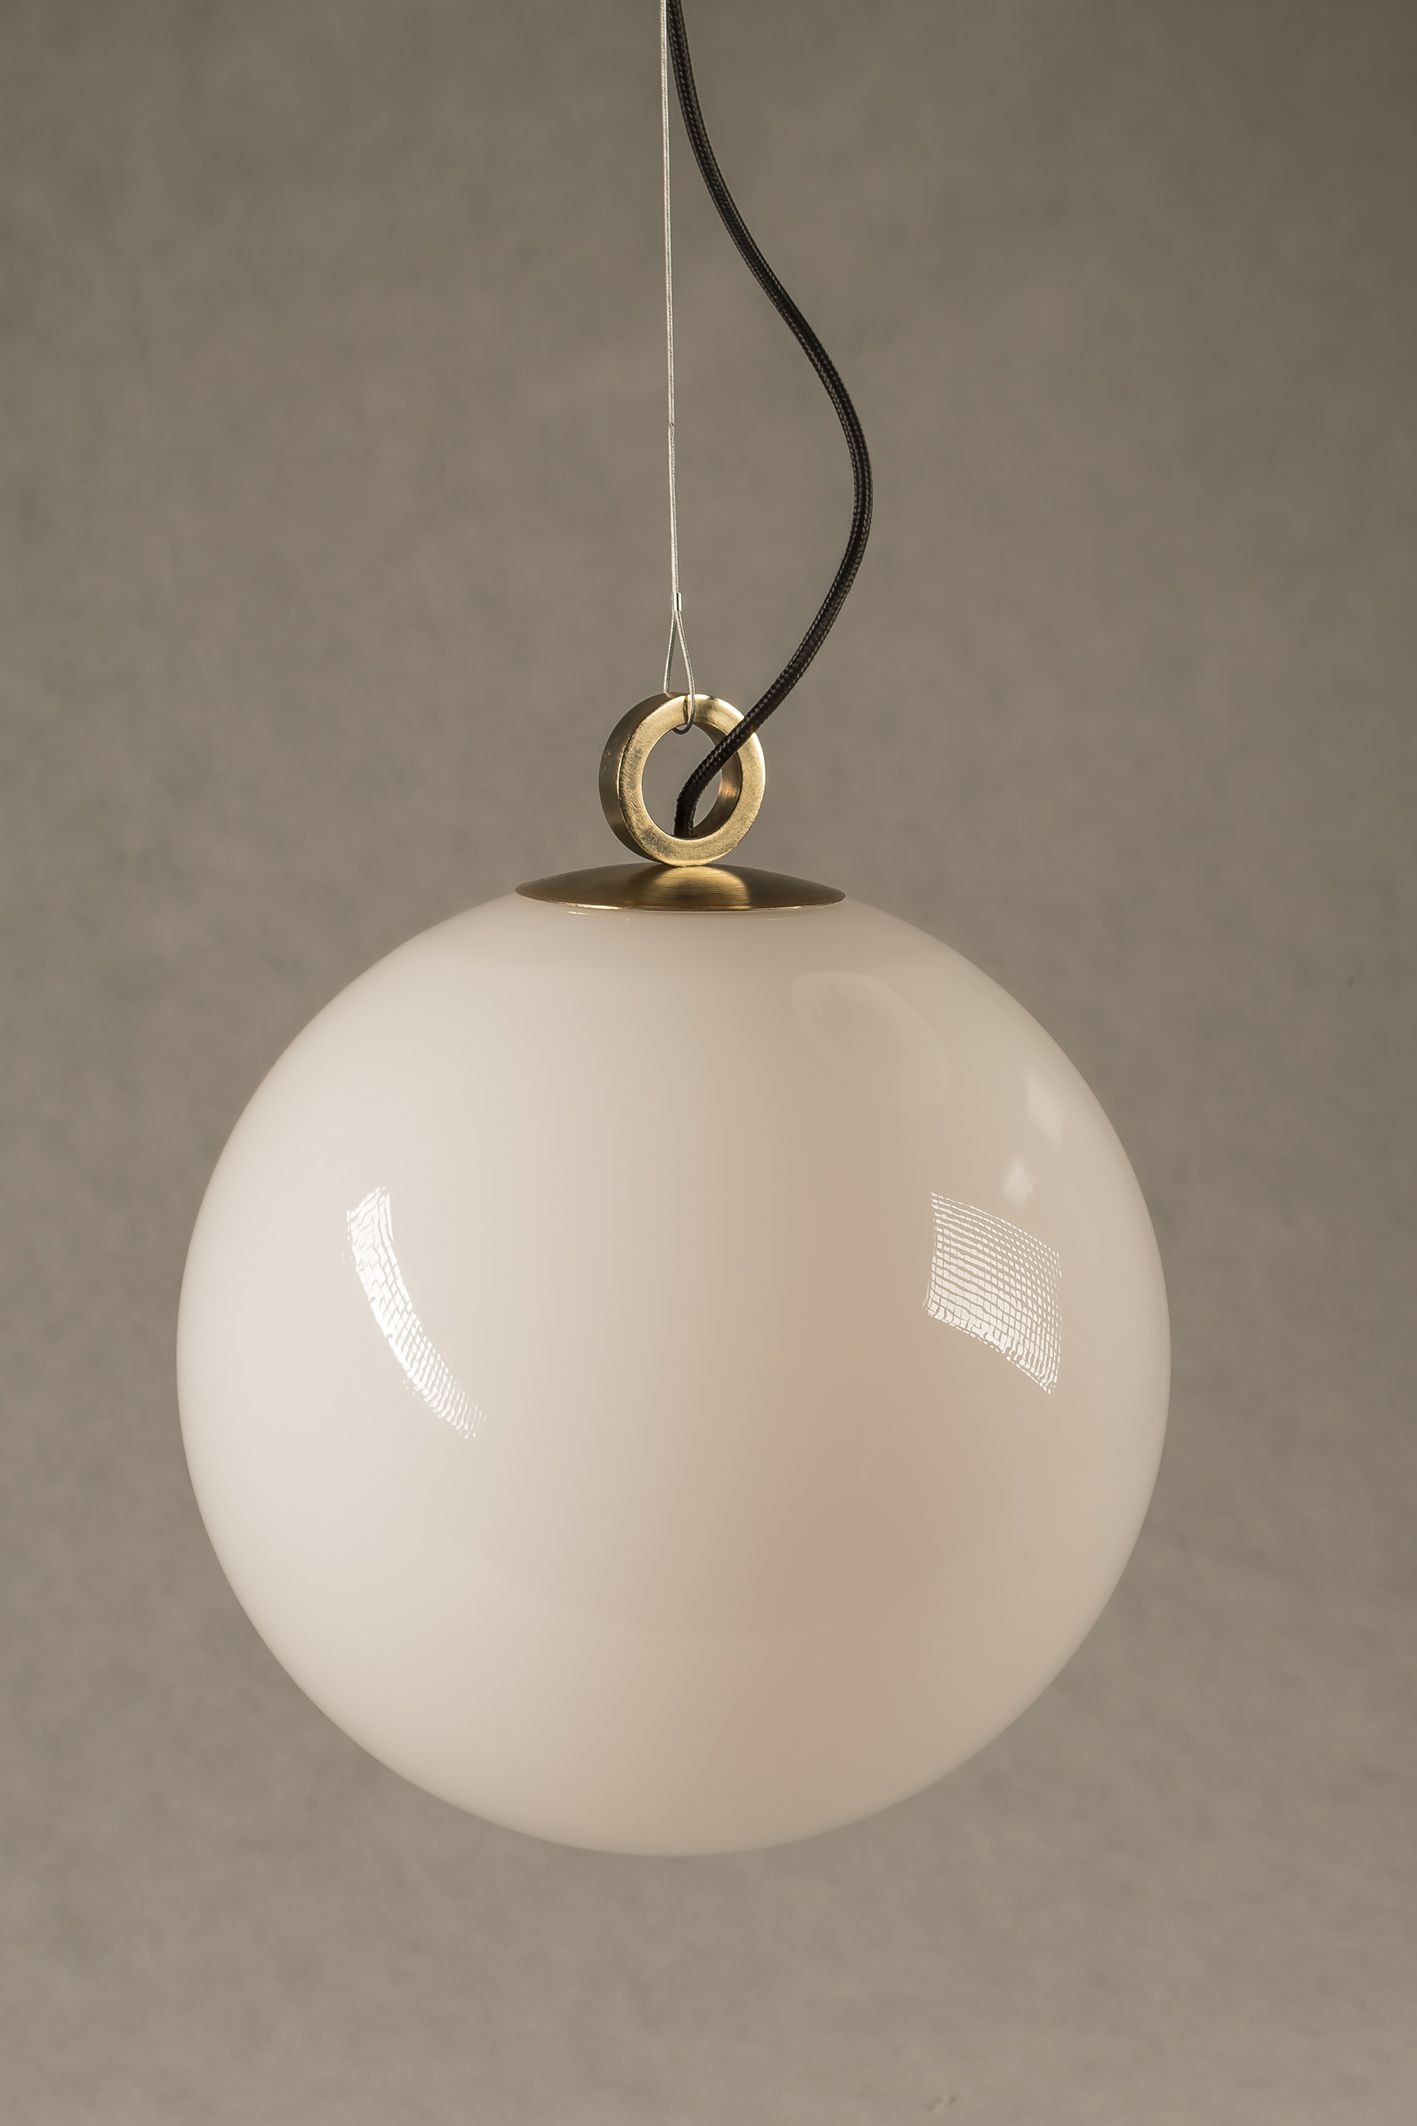 Pendant Lamp White Ball Lamp With Brass Top With Ring White Pendant Lamp Ball Lamps Handblown Glass Pendant